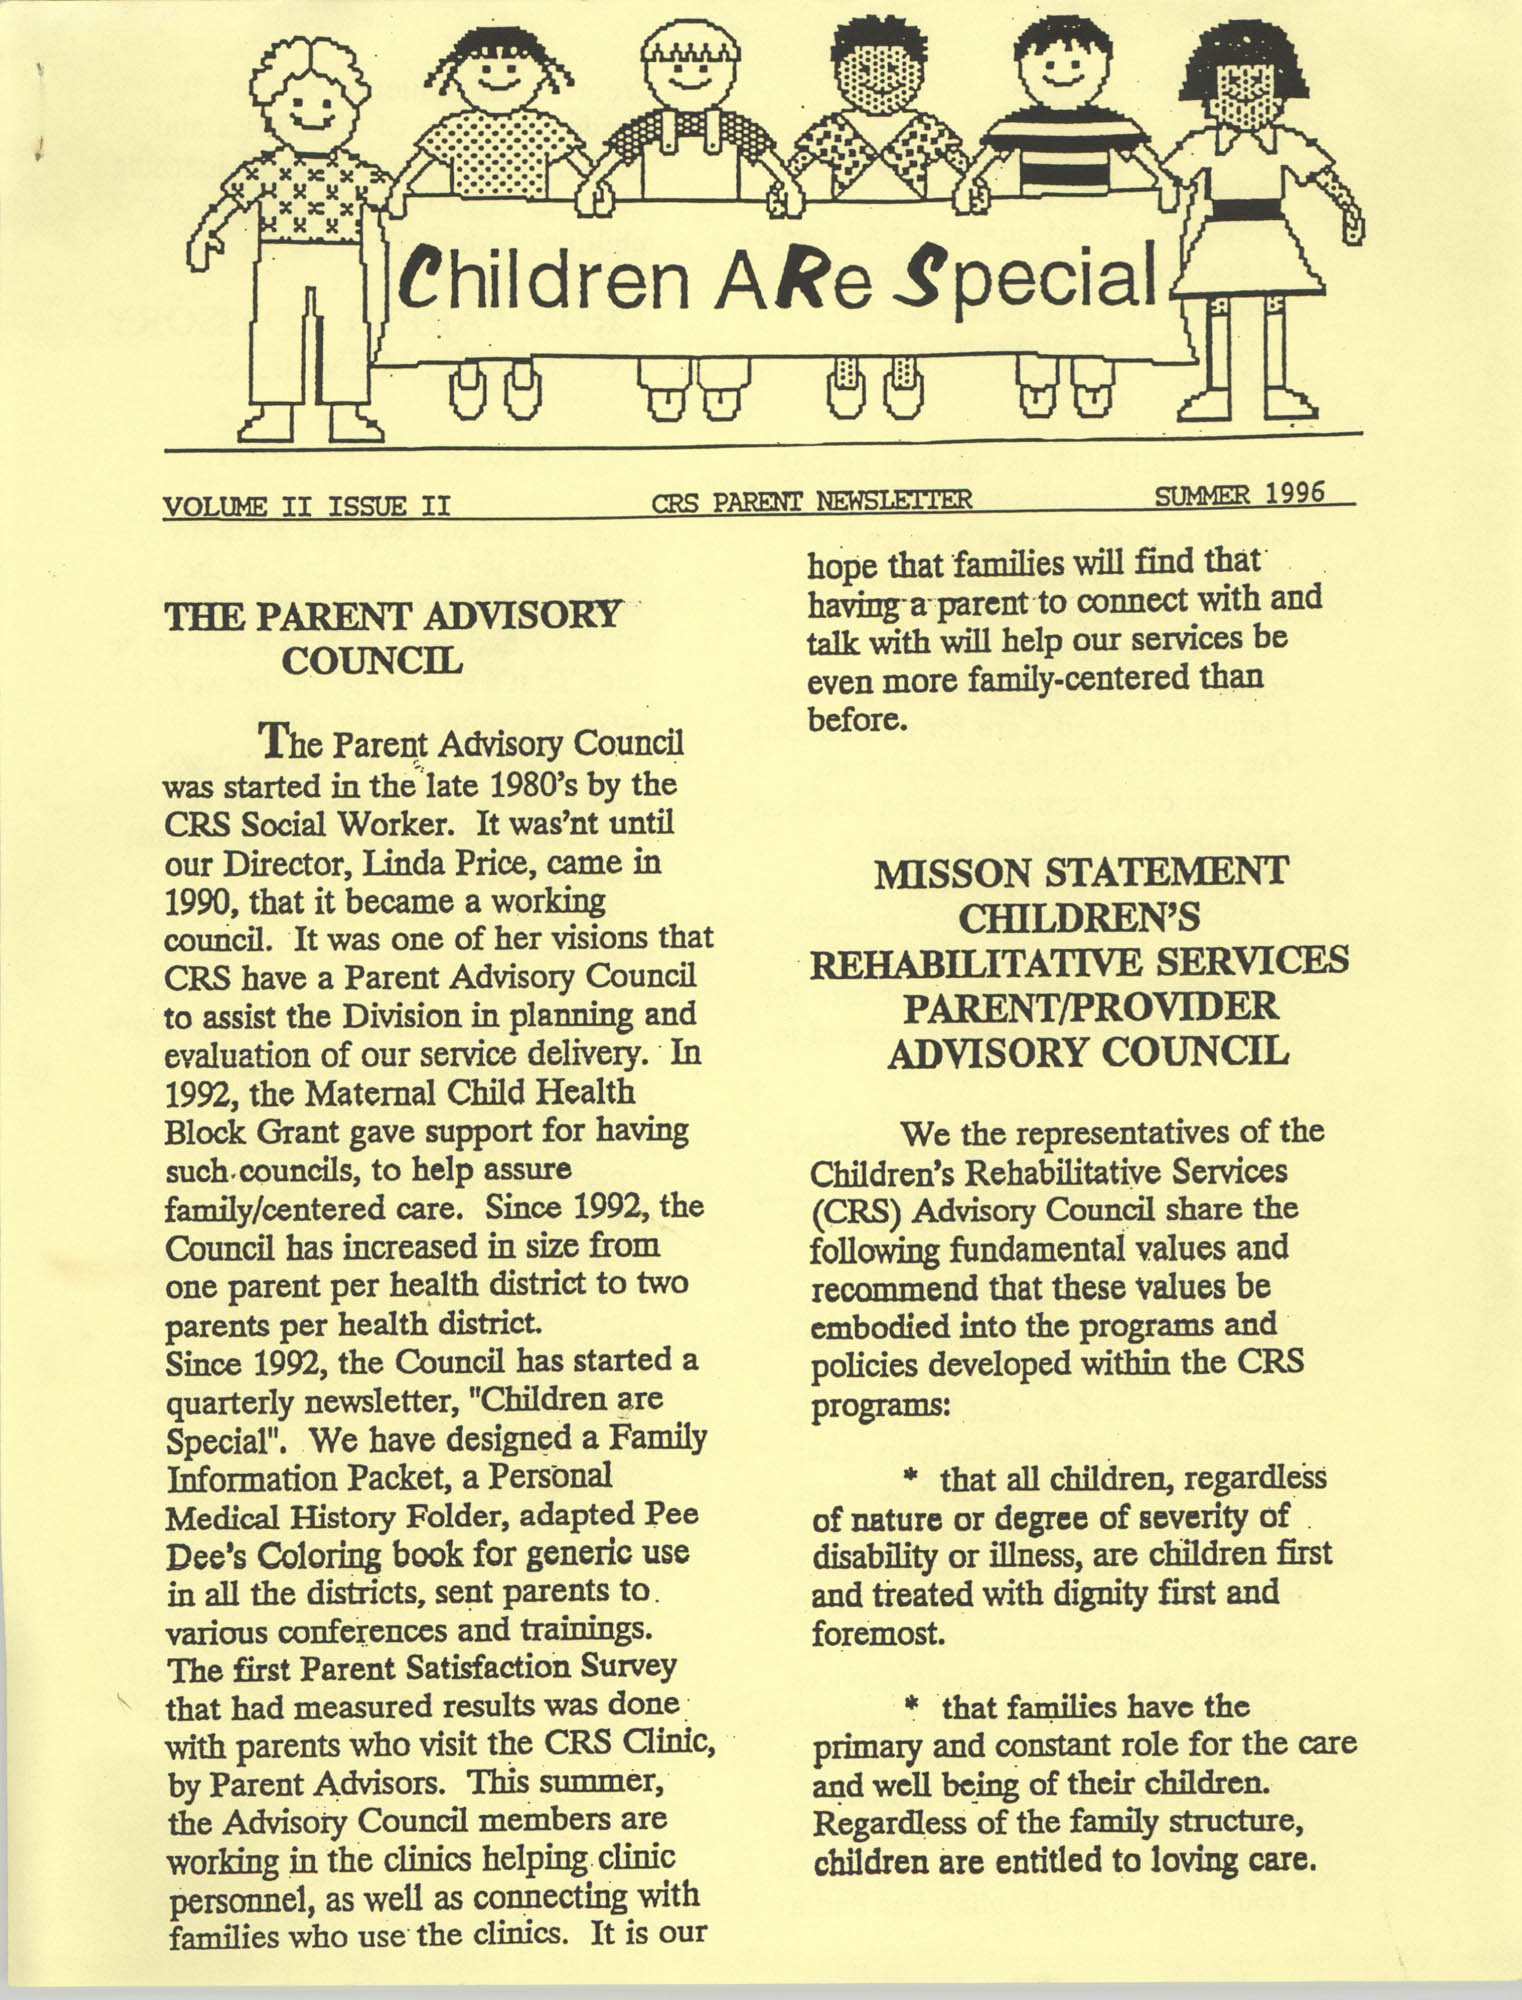 Children Are Special, Volume II, Issue II